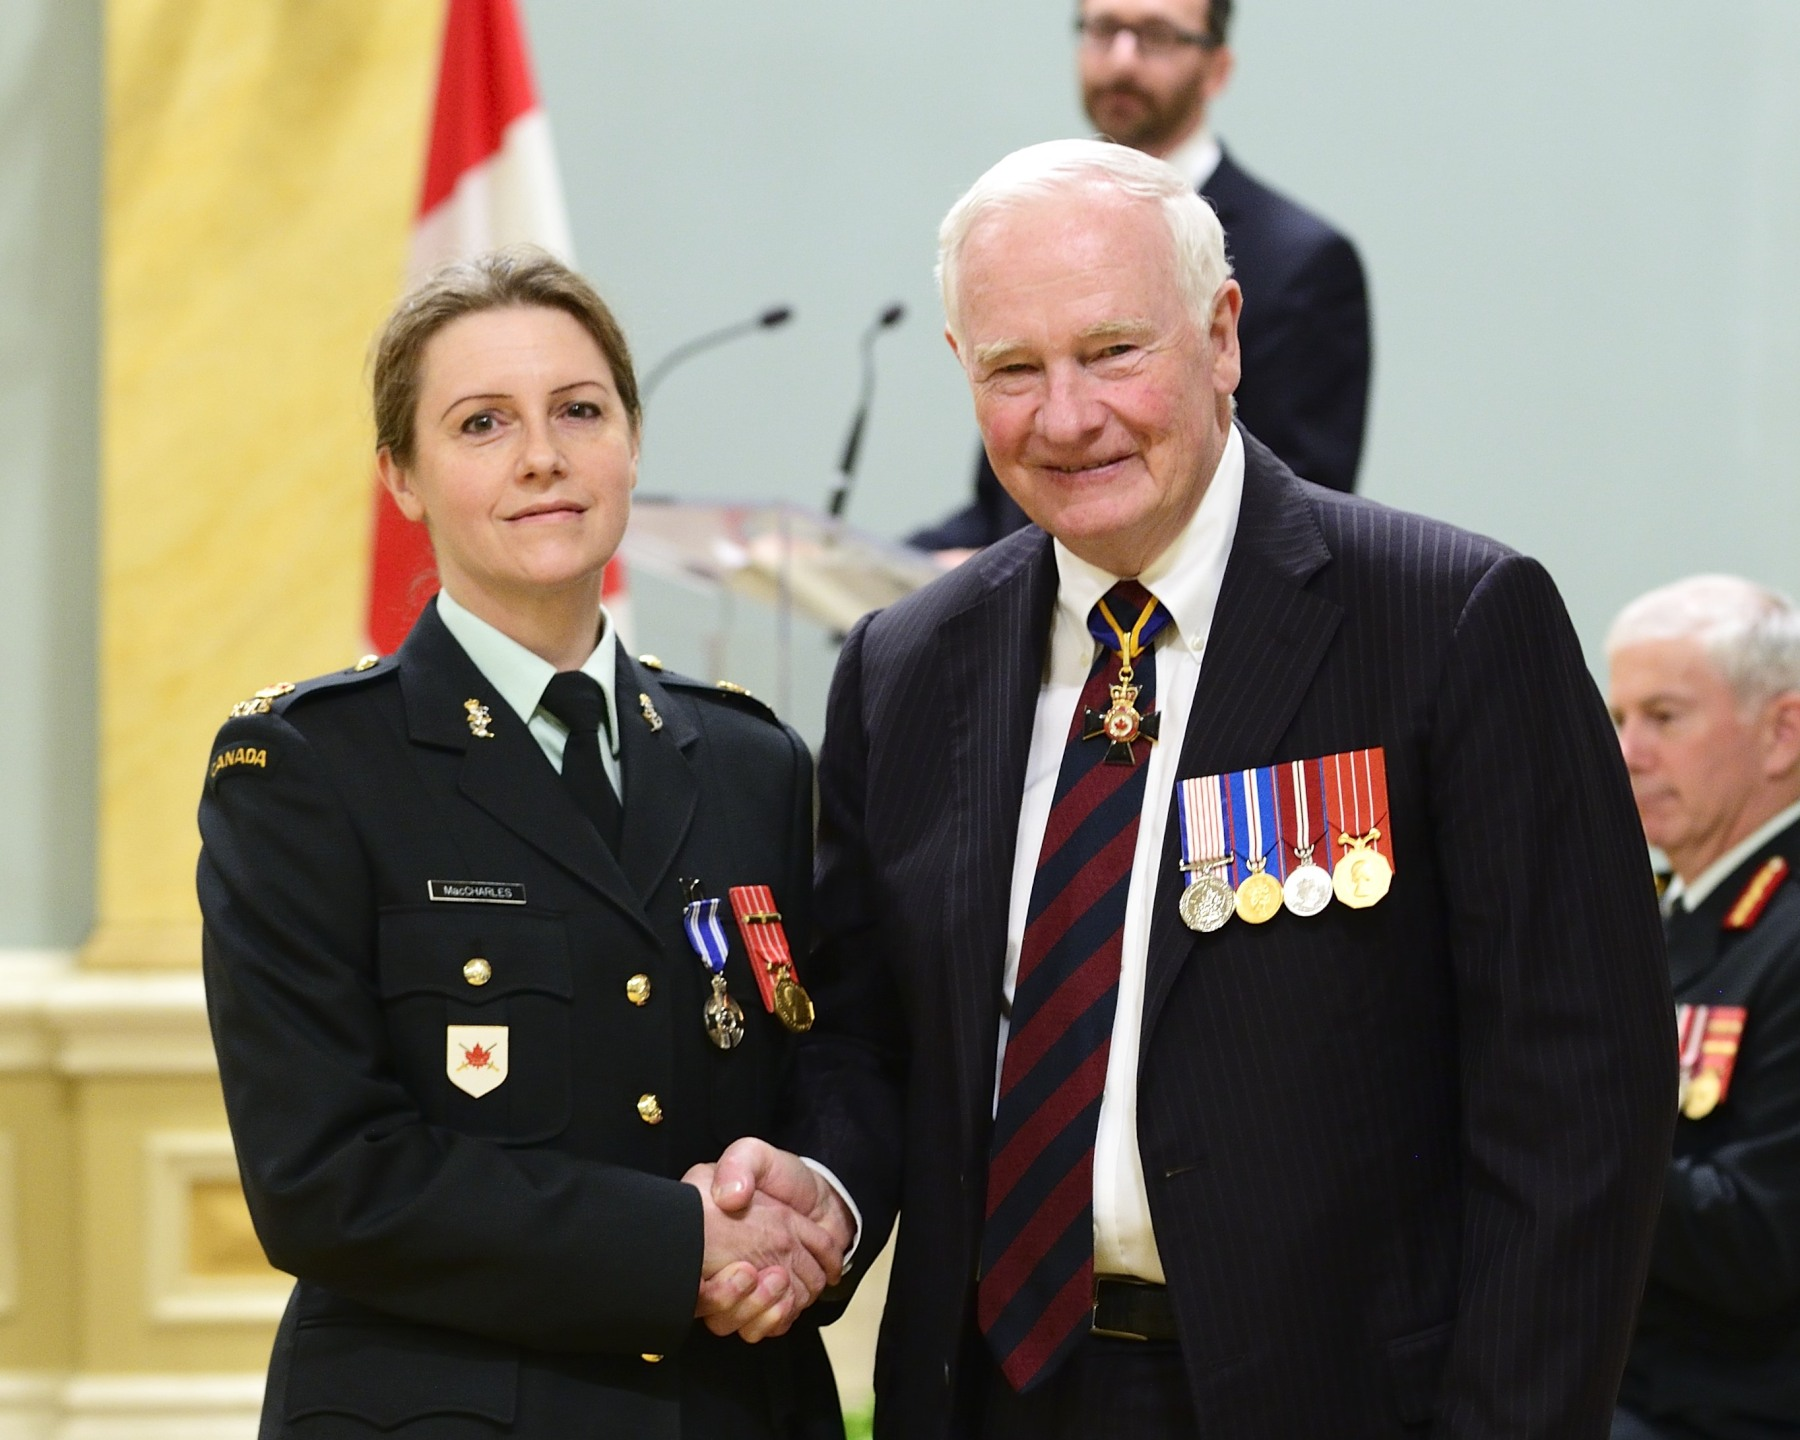 Between 2009 and 2011, Major Heather Joy MacCharles, M.S.M., C.D. (Kingston, Ontario) exhibited personal courage, professionalism and leadership in her efforts to champion the issue of family violence and sexual assault. While spearheading a Canadian Forces-wide review on the subject, she identified deficiencies in the existing Canadian Forces policy. As a direct result of her perseverance, this sensitive issue was brought to the attention of the Armed Forces Council, which resulted in a complete review of and subsequent changes to the Canadian Forces' approach.